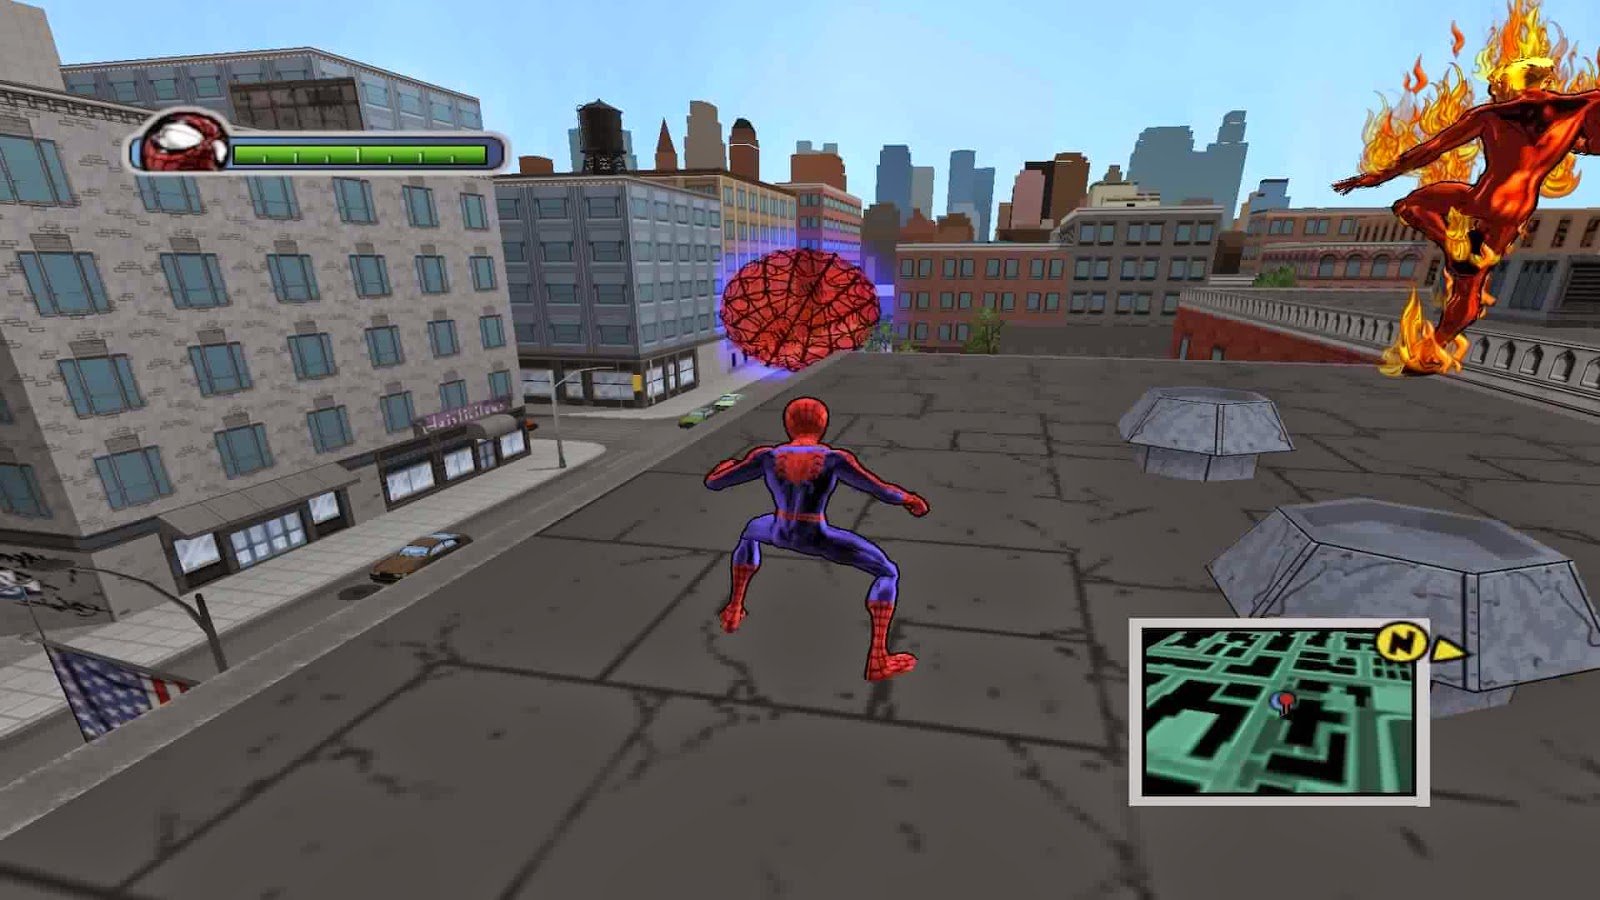 Ultimate%2BSpider%2BMan%2Bgame%2Bfree%2Bdownload.jpeg